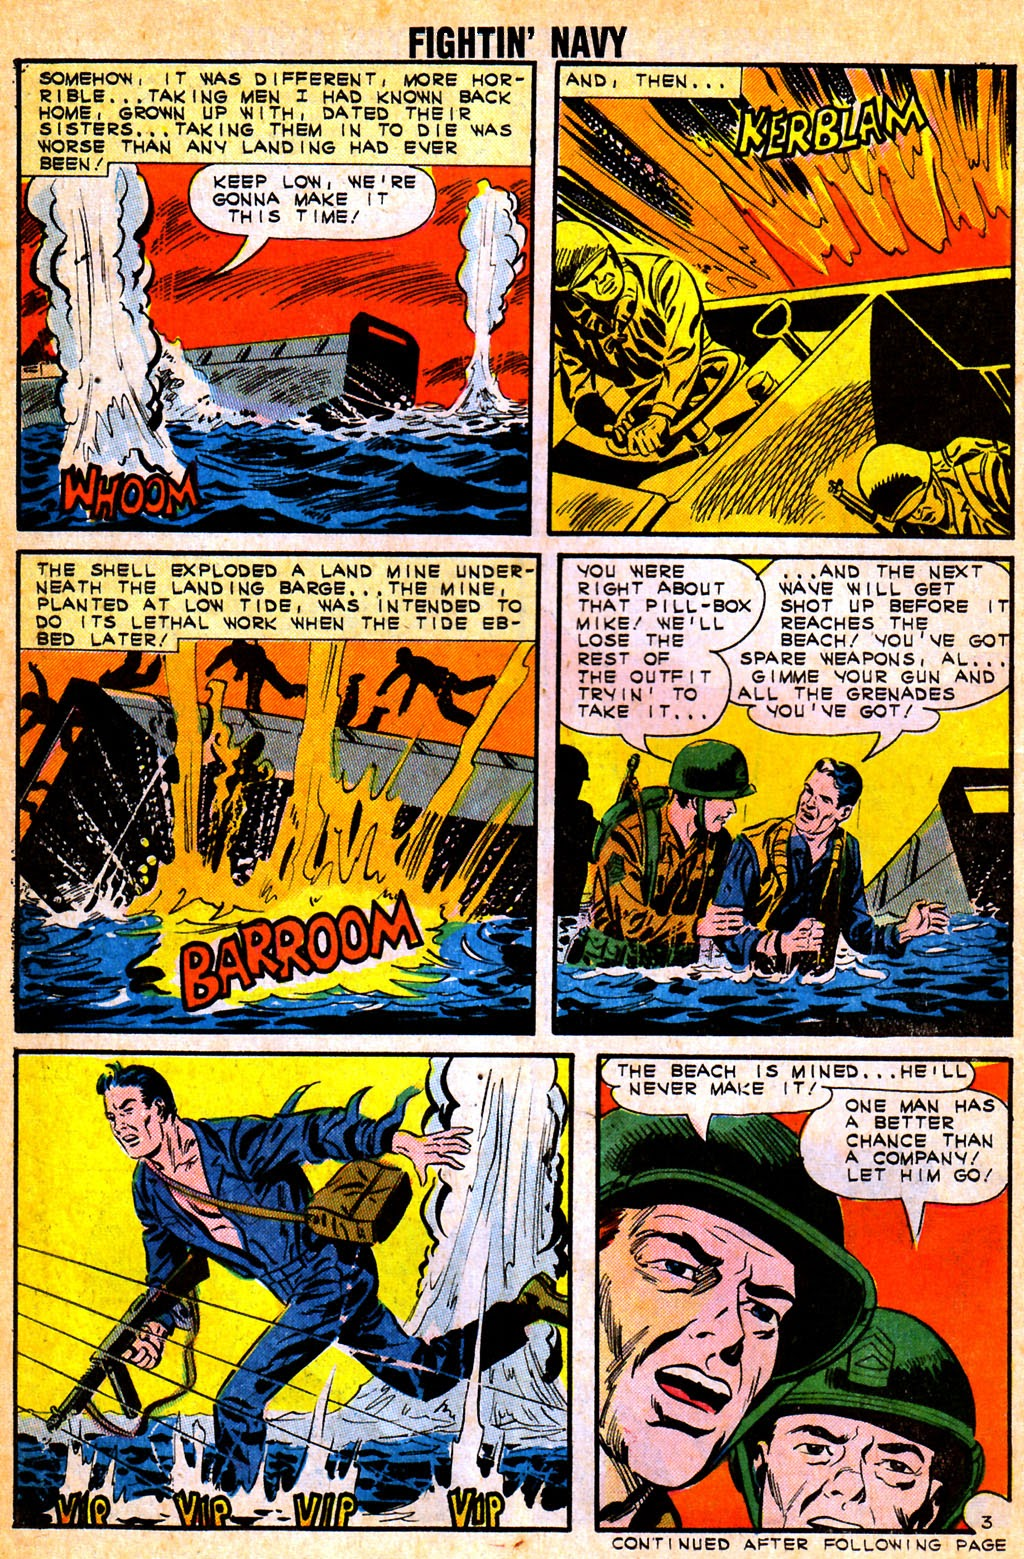 Read online Fightin' Navy comic -  Issue #111 - 14